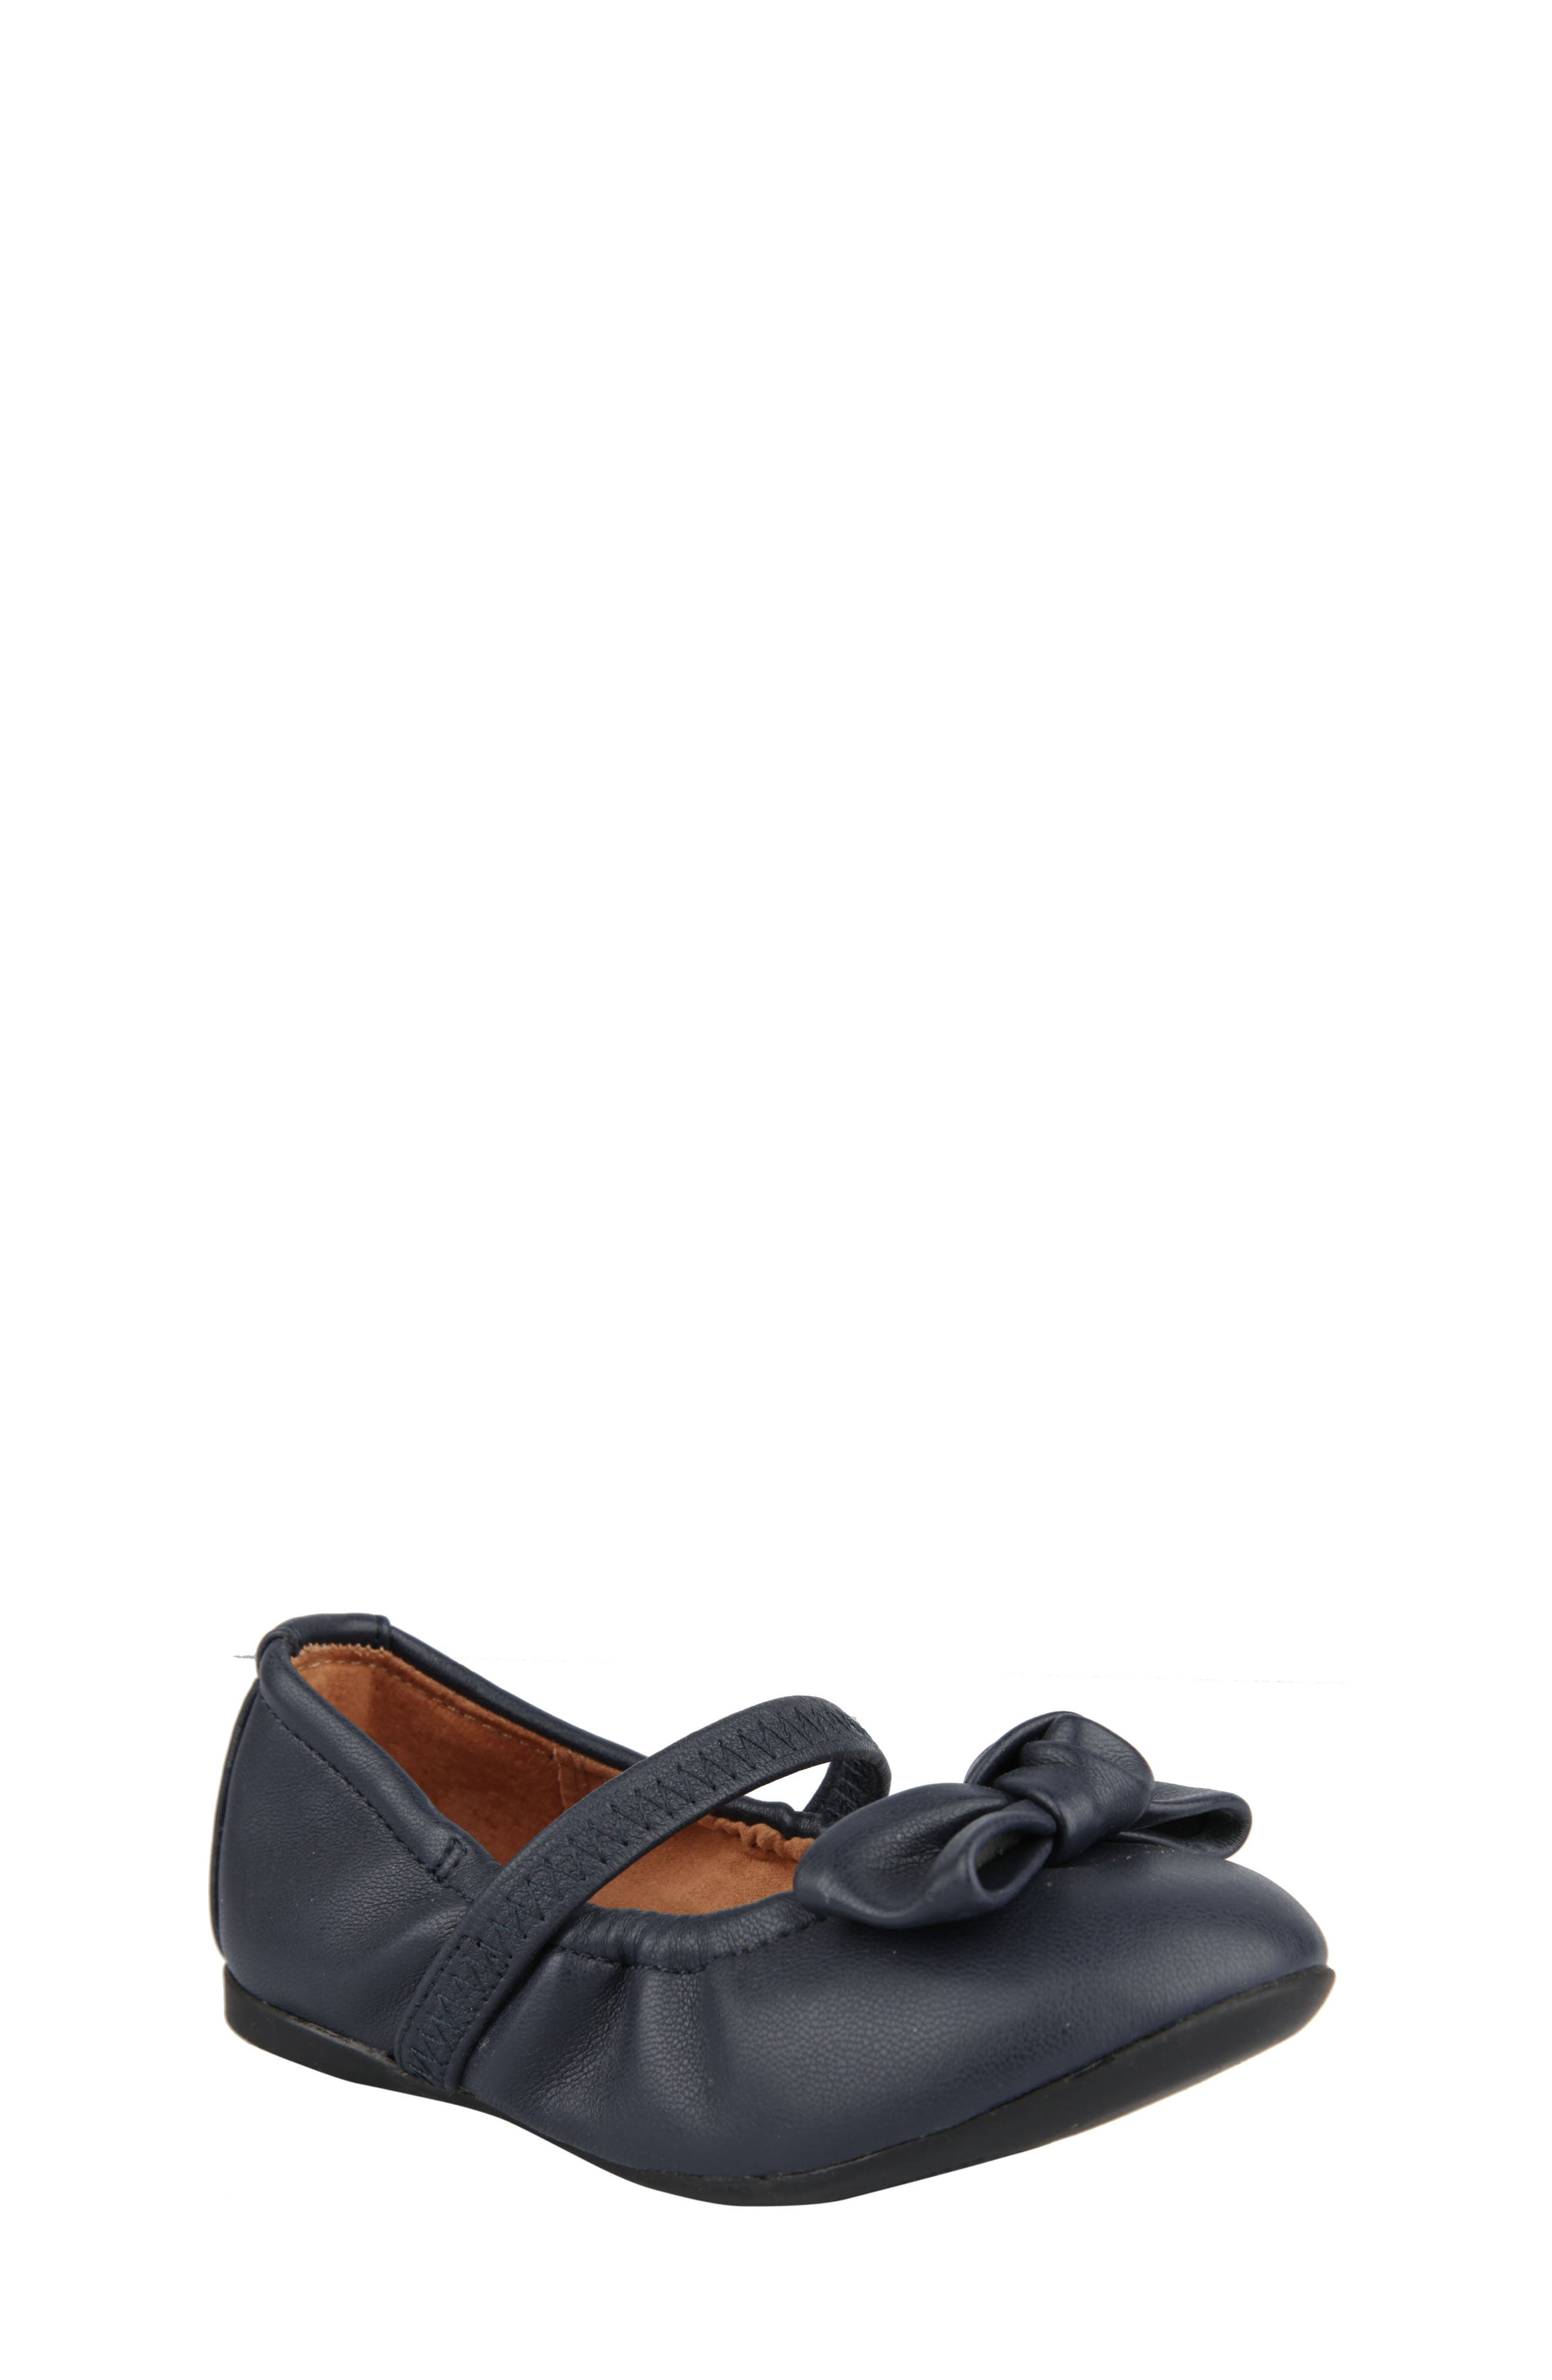 Karla Mary Jane Ballet Flat,                         Main,                         color, Navy Faux Leather